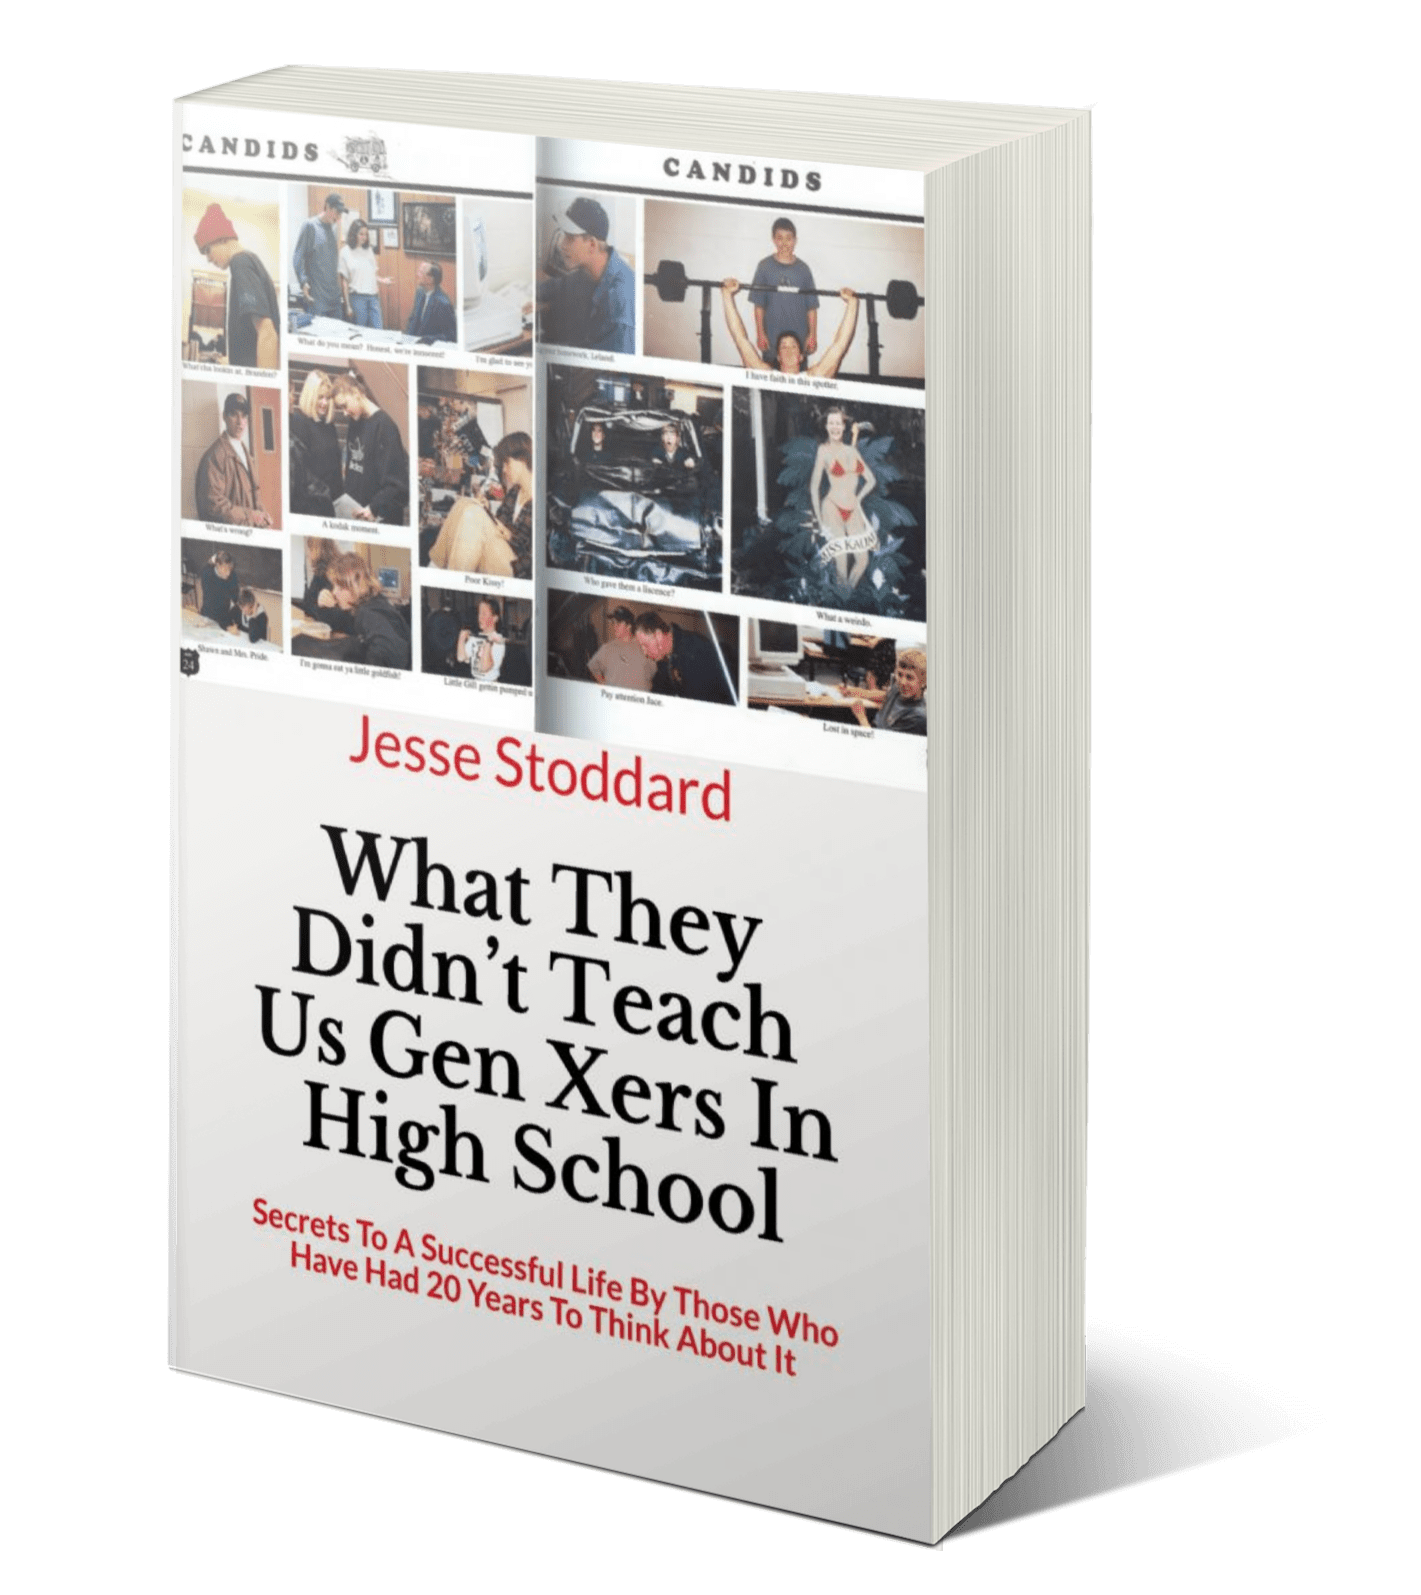 What They Didn't Teach Us Gen Xers In High School Paperback book